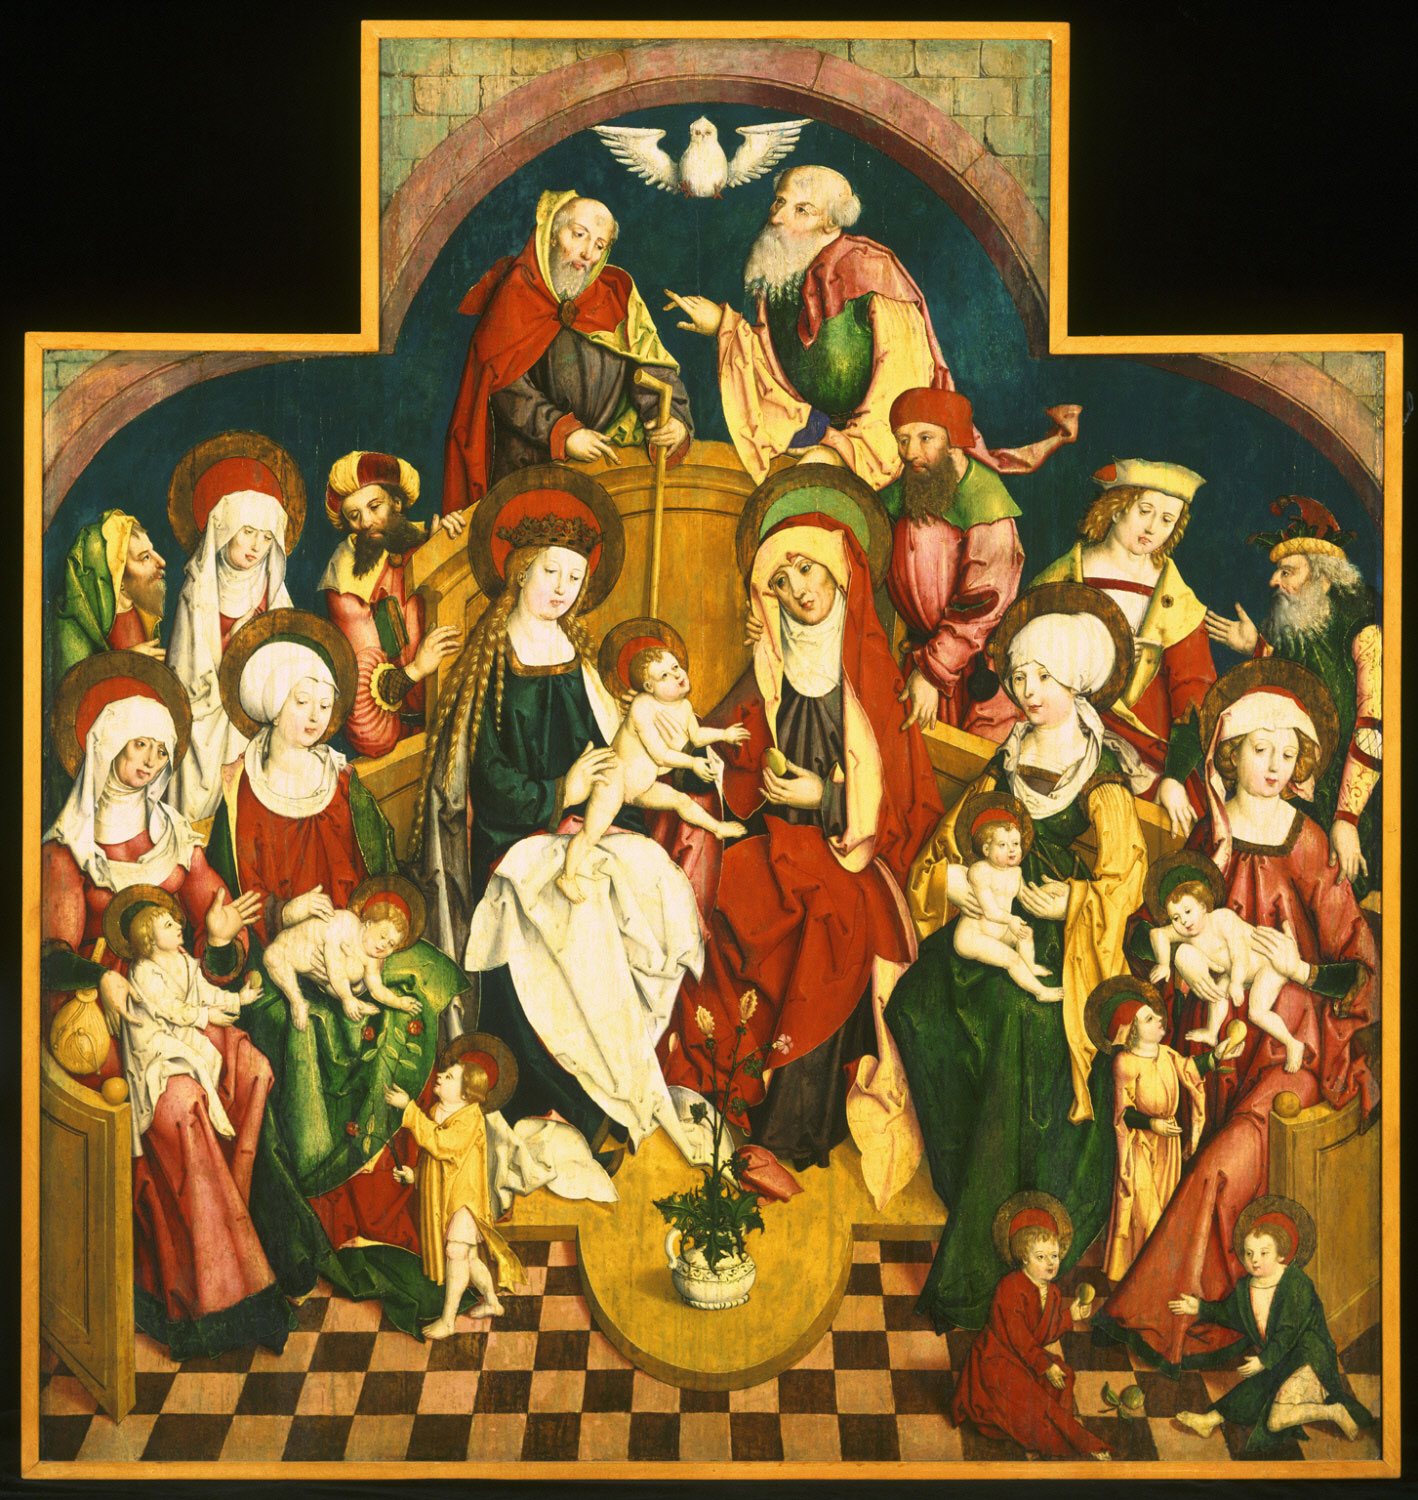 The Holy Kinship  , c. 1500, Attributed to Matthäus Gutrecht the Younger, German, from  the Philadelphia Museum of Art